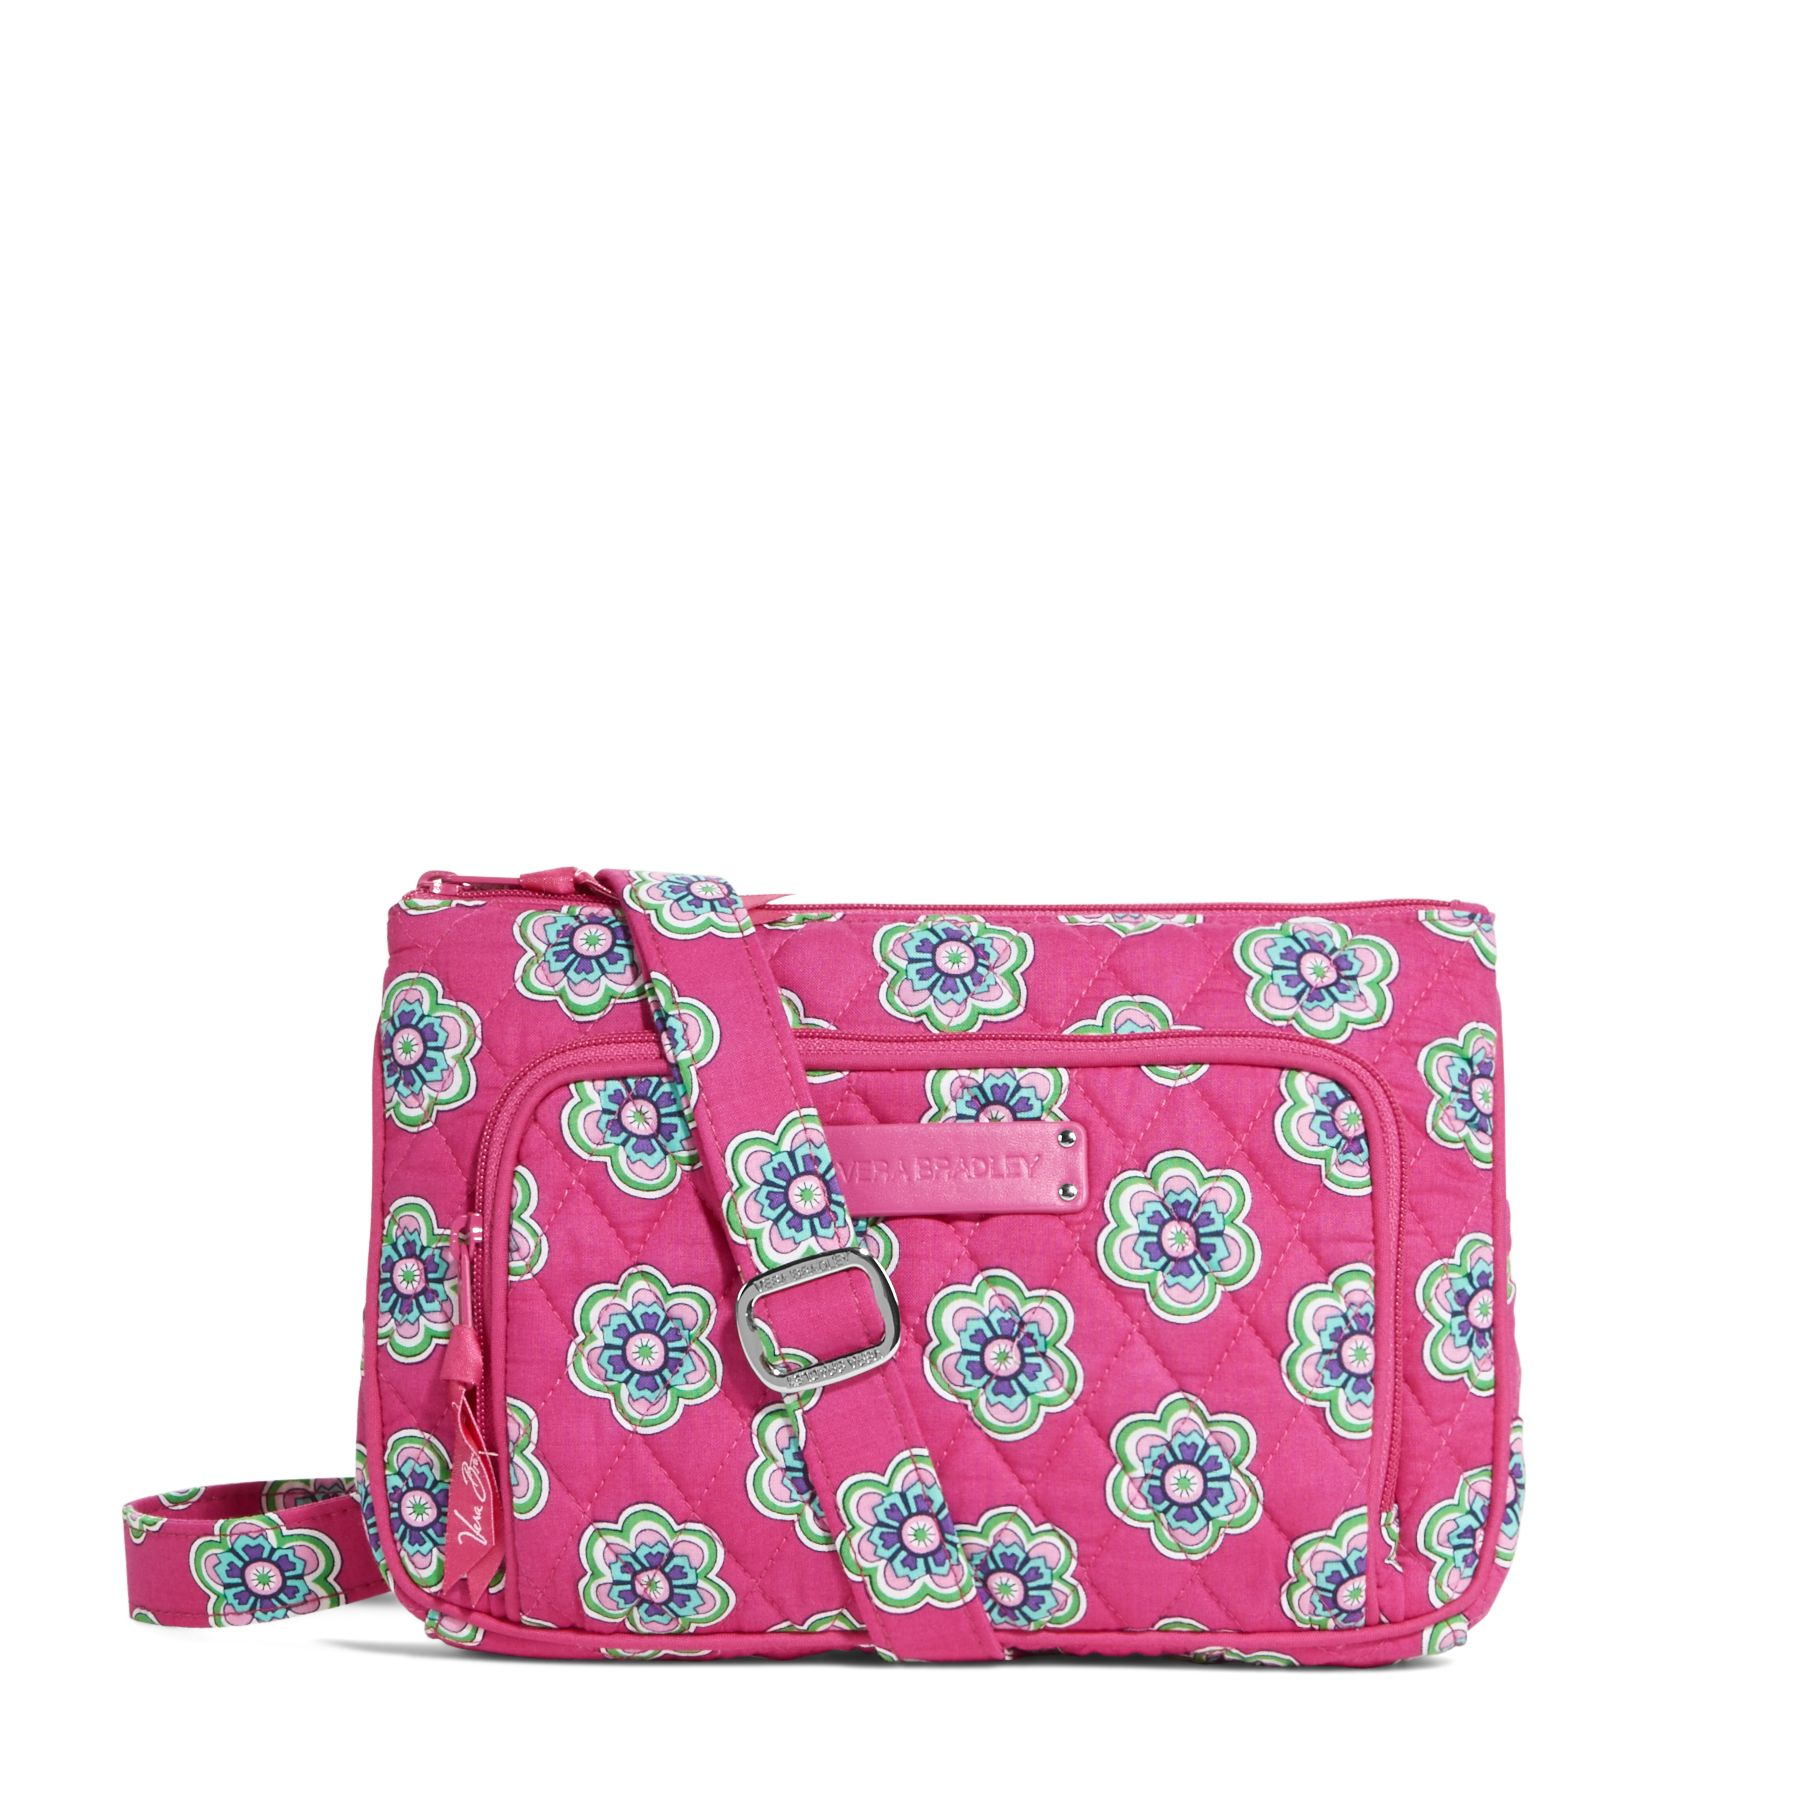 Vera Bradley Little Hipster Crossbody in Pink Swirls Flowers